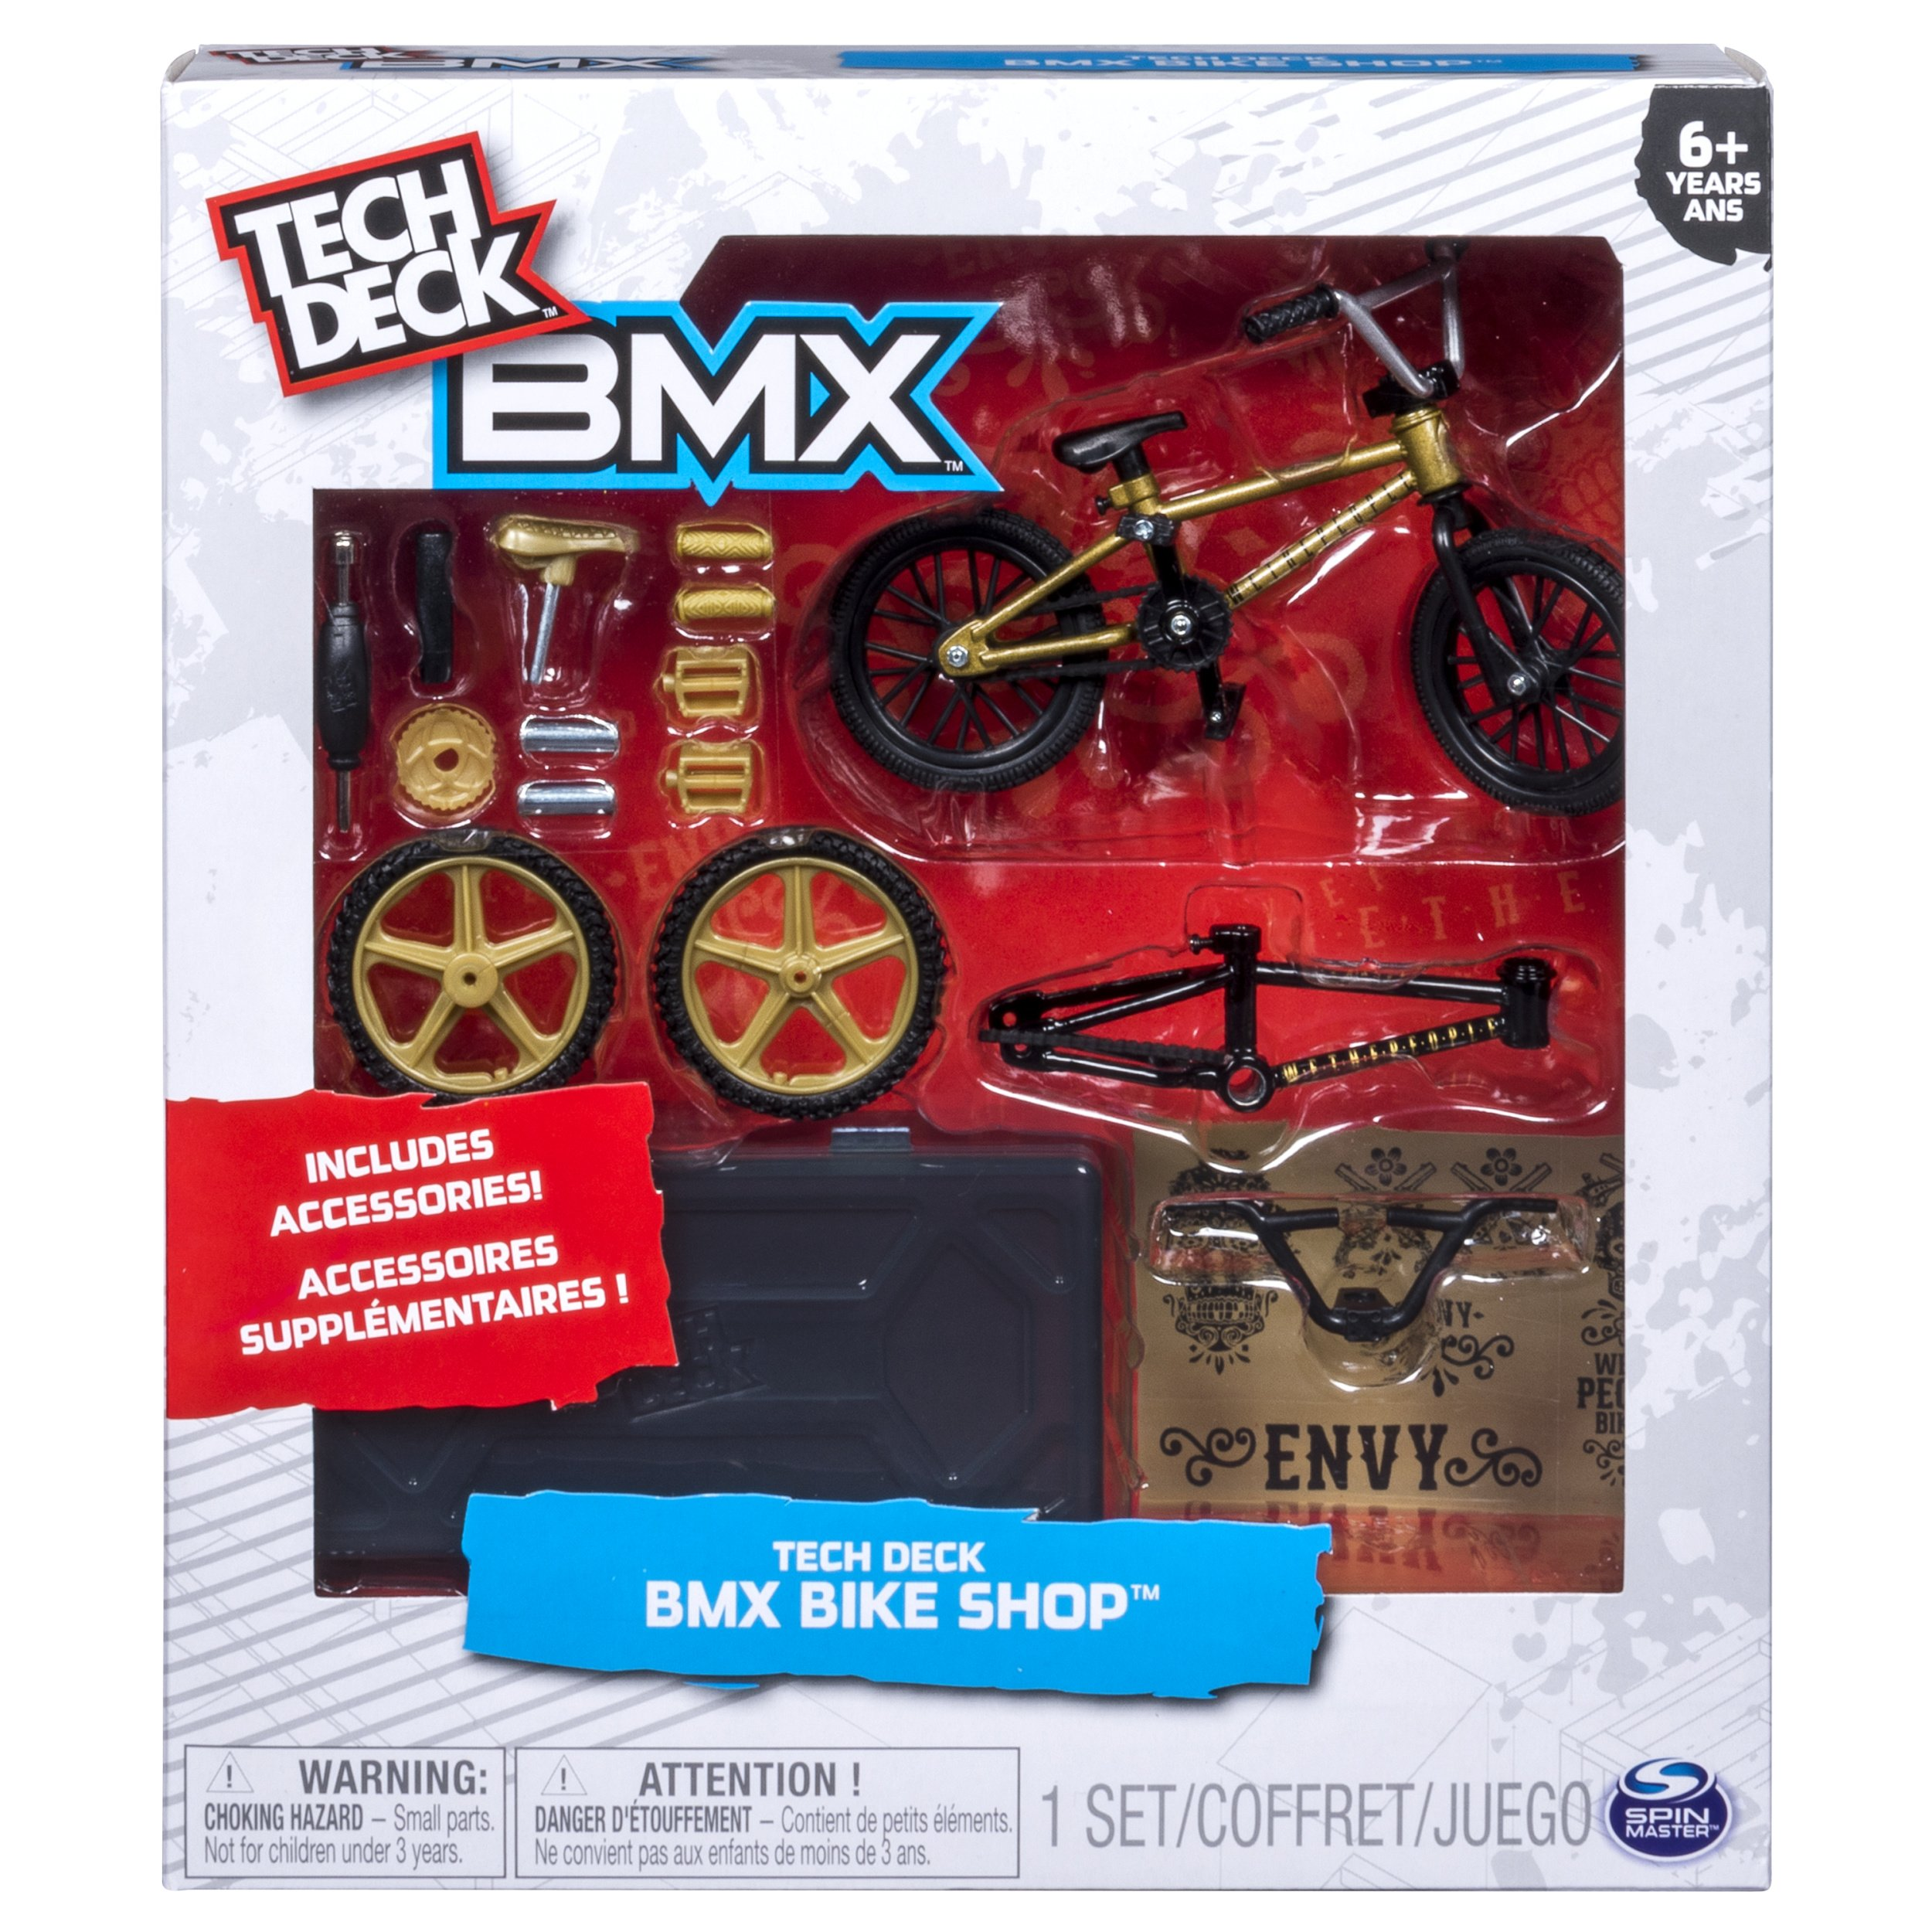 Tech Deck – BMX Bike Shop with Accessories and Storage Container – WeThePeople Bikes – Gold & Black by Tech Deck (Image #2)